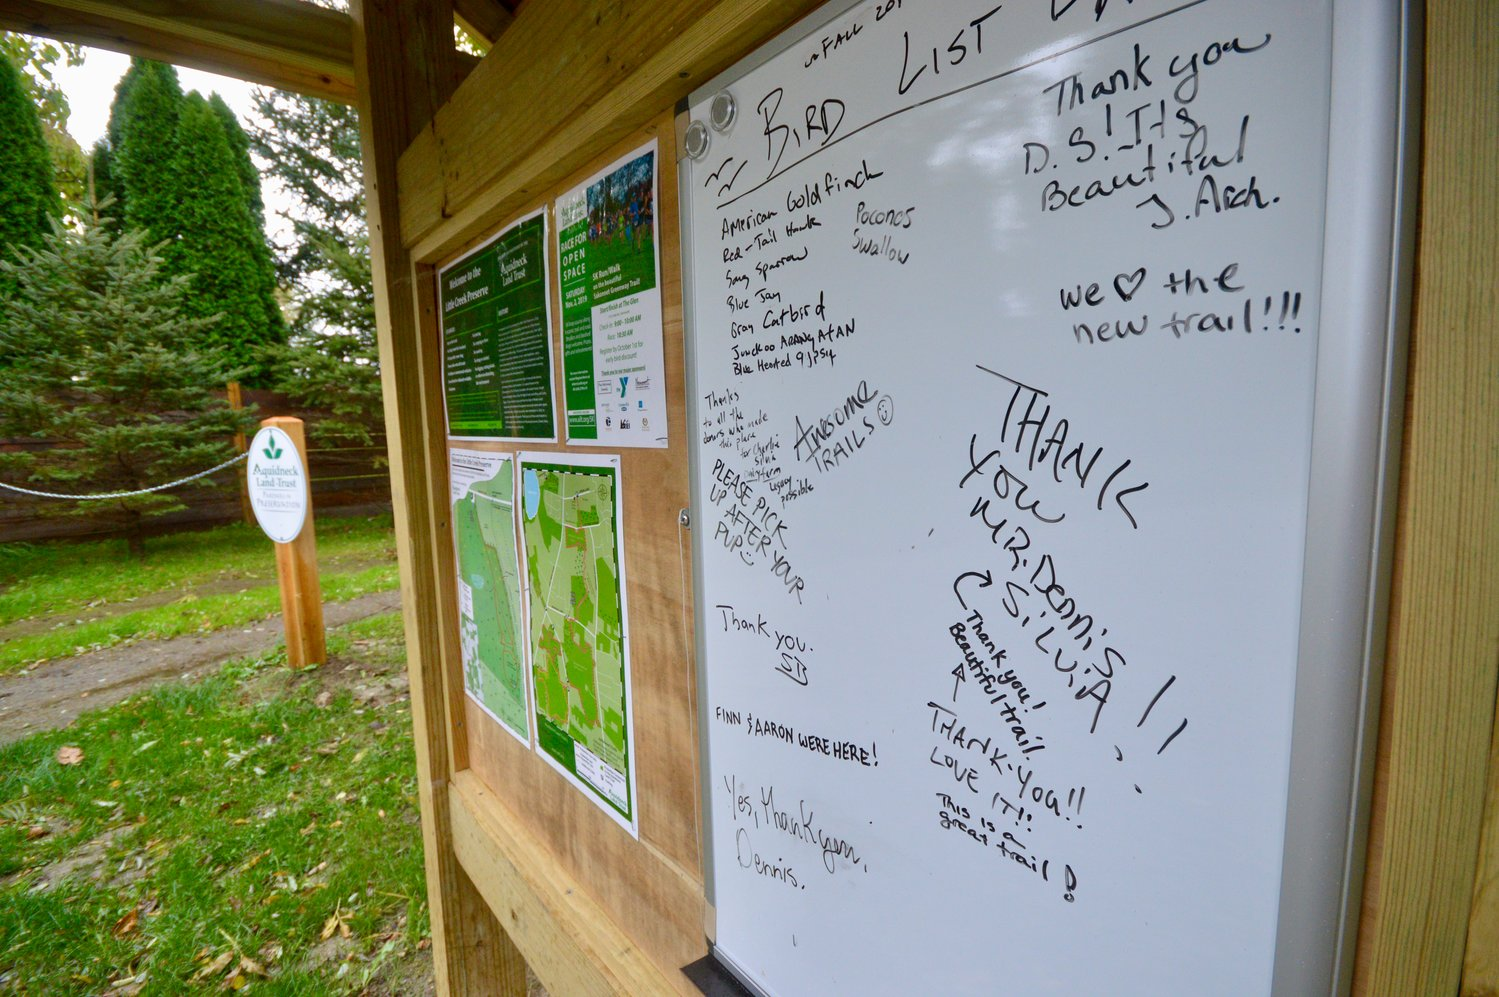 A message board at the entrance of Little Creek Preserve includes messages of thanks to previous owner Dennis Silvia.